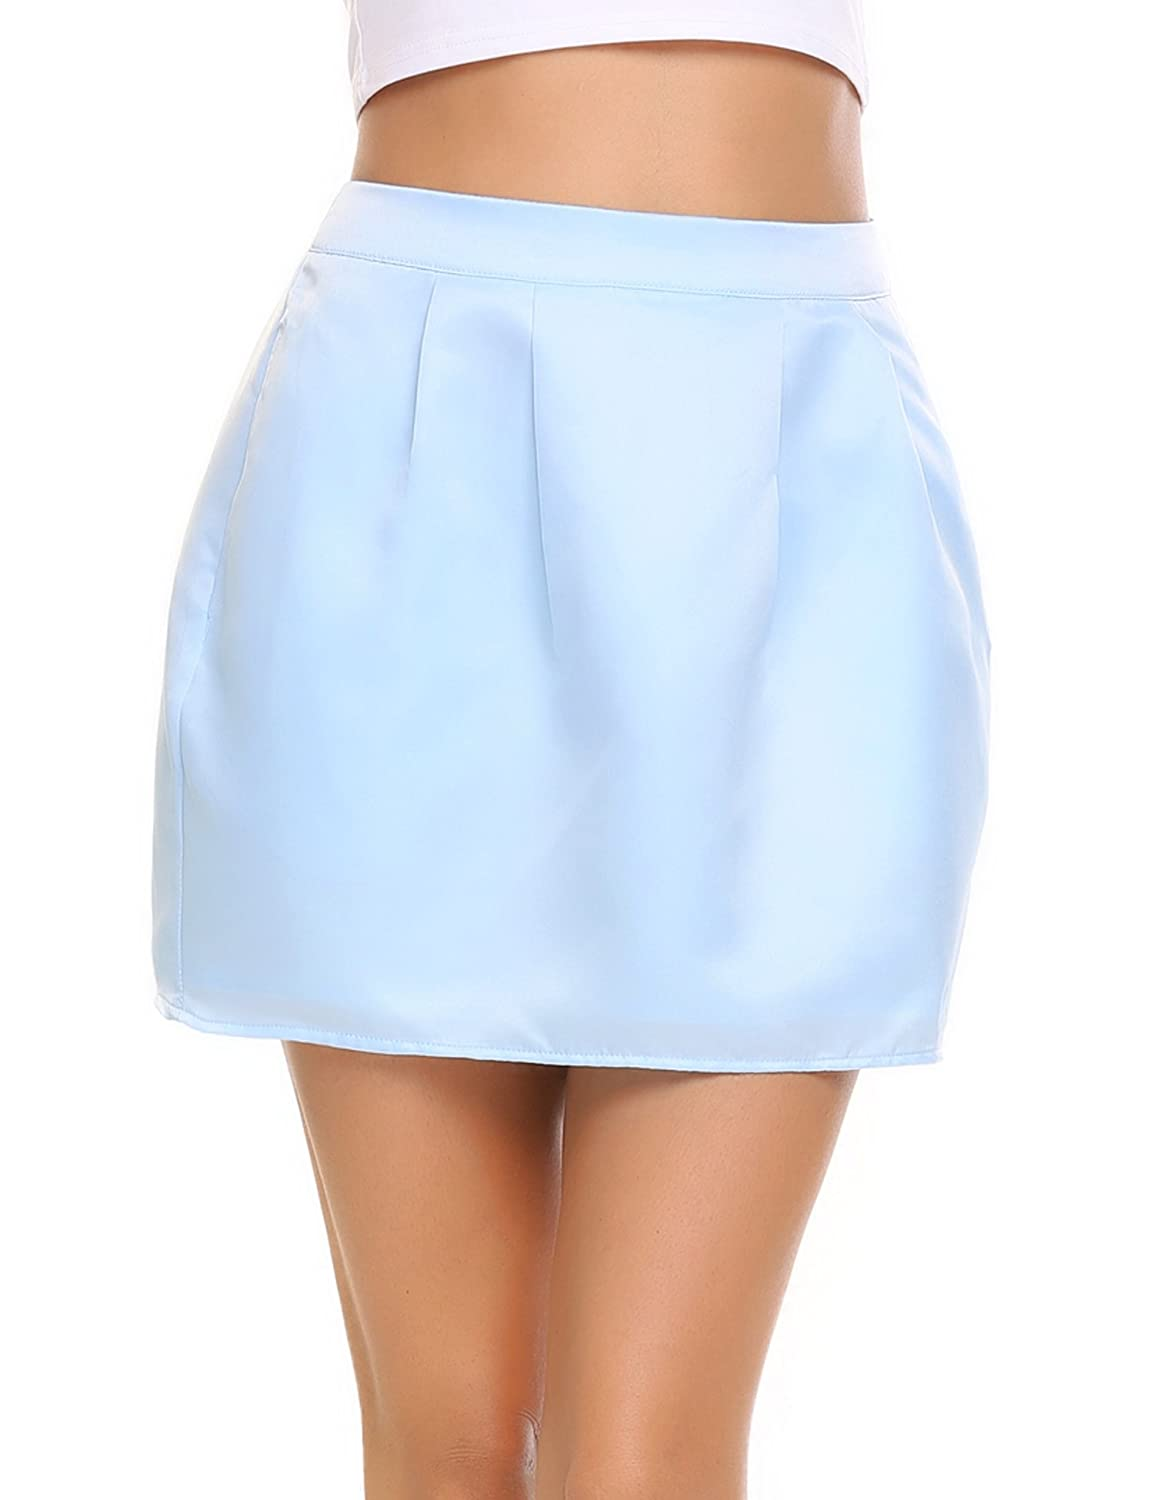 Zeagoo Women's Cute A-Line Mini Flared Skirt With Pocket and Lining